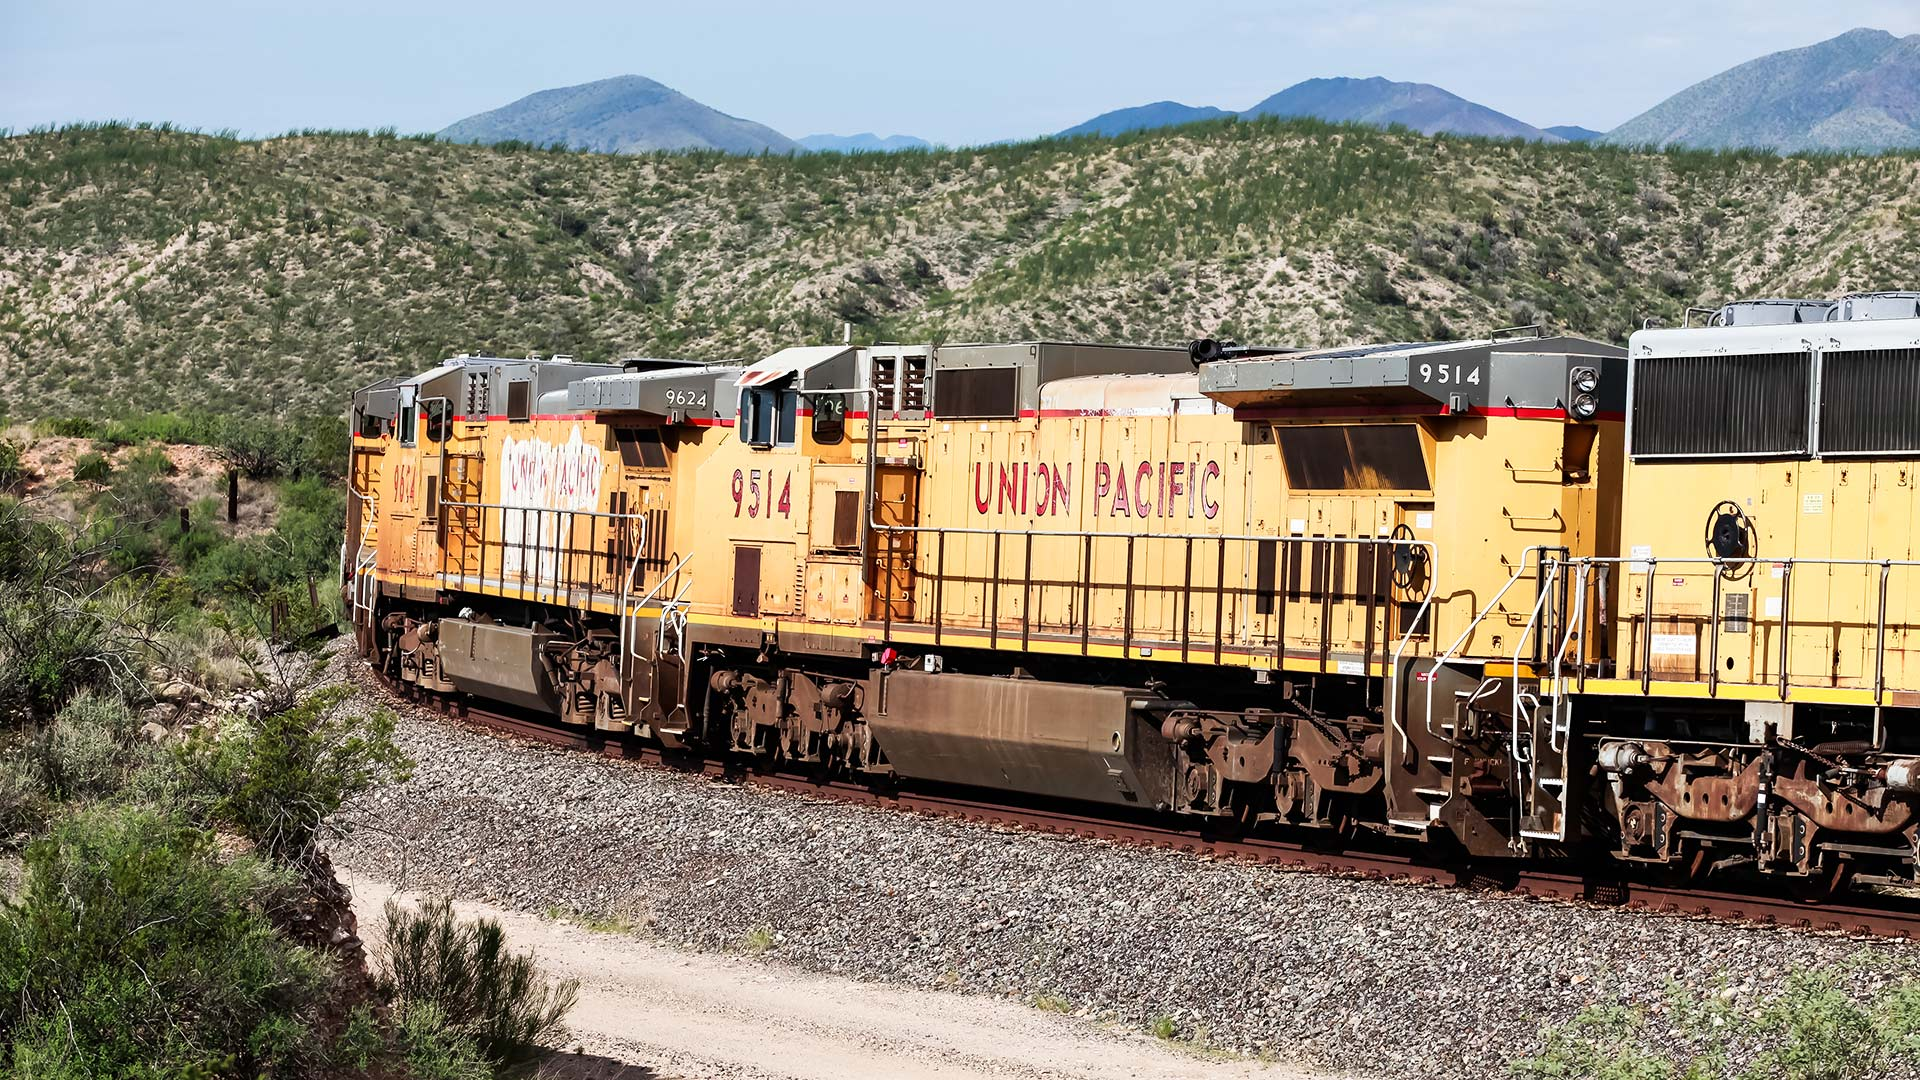 A Union Pacific train passes.